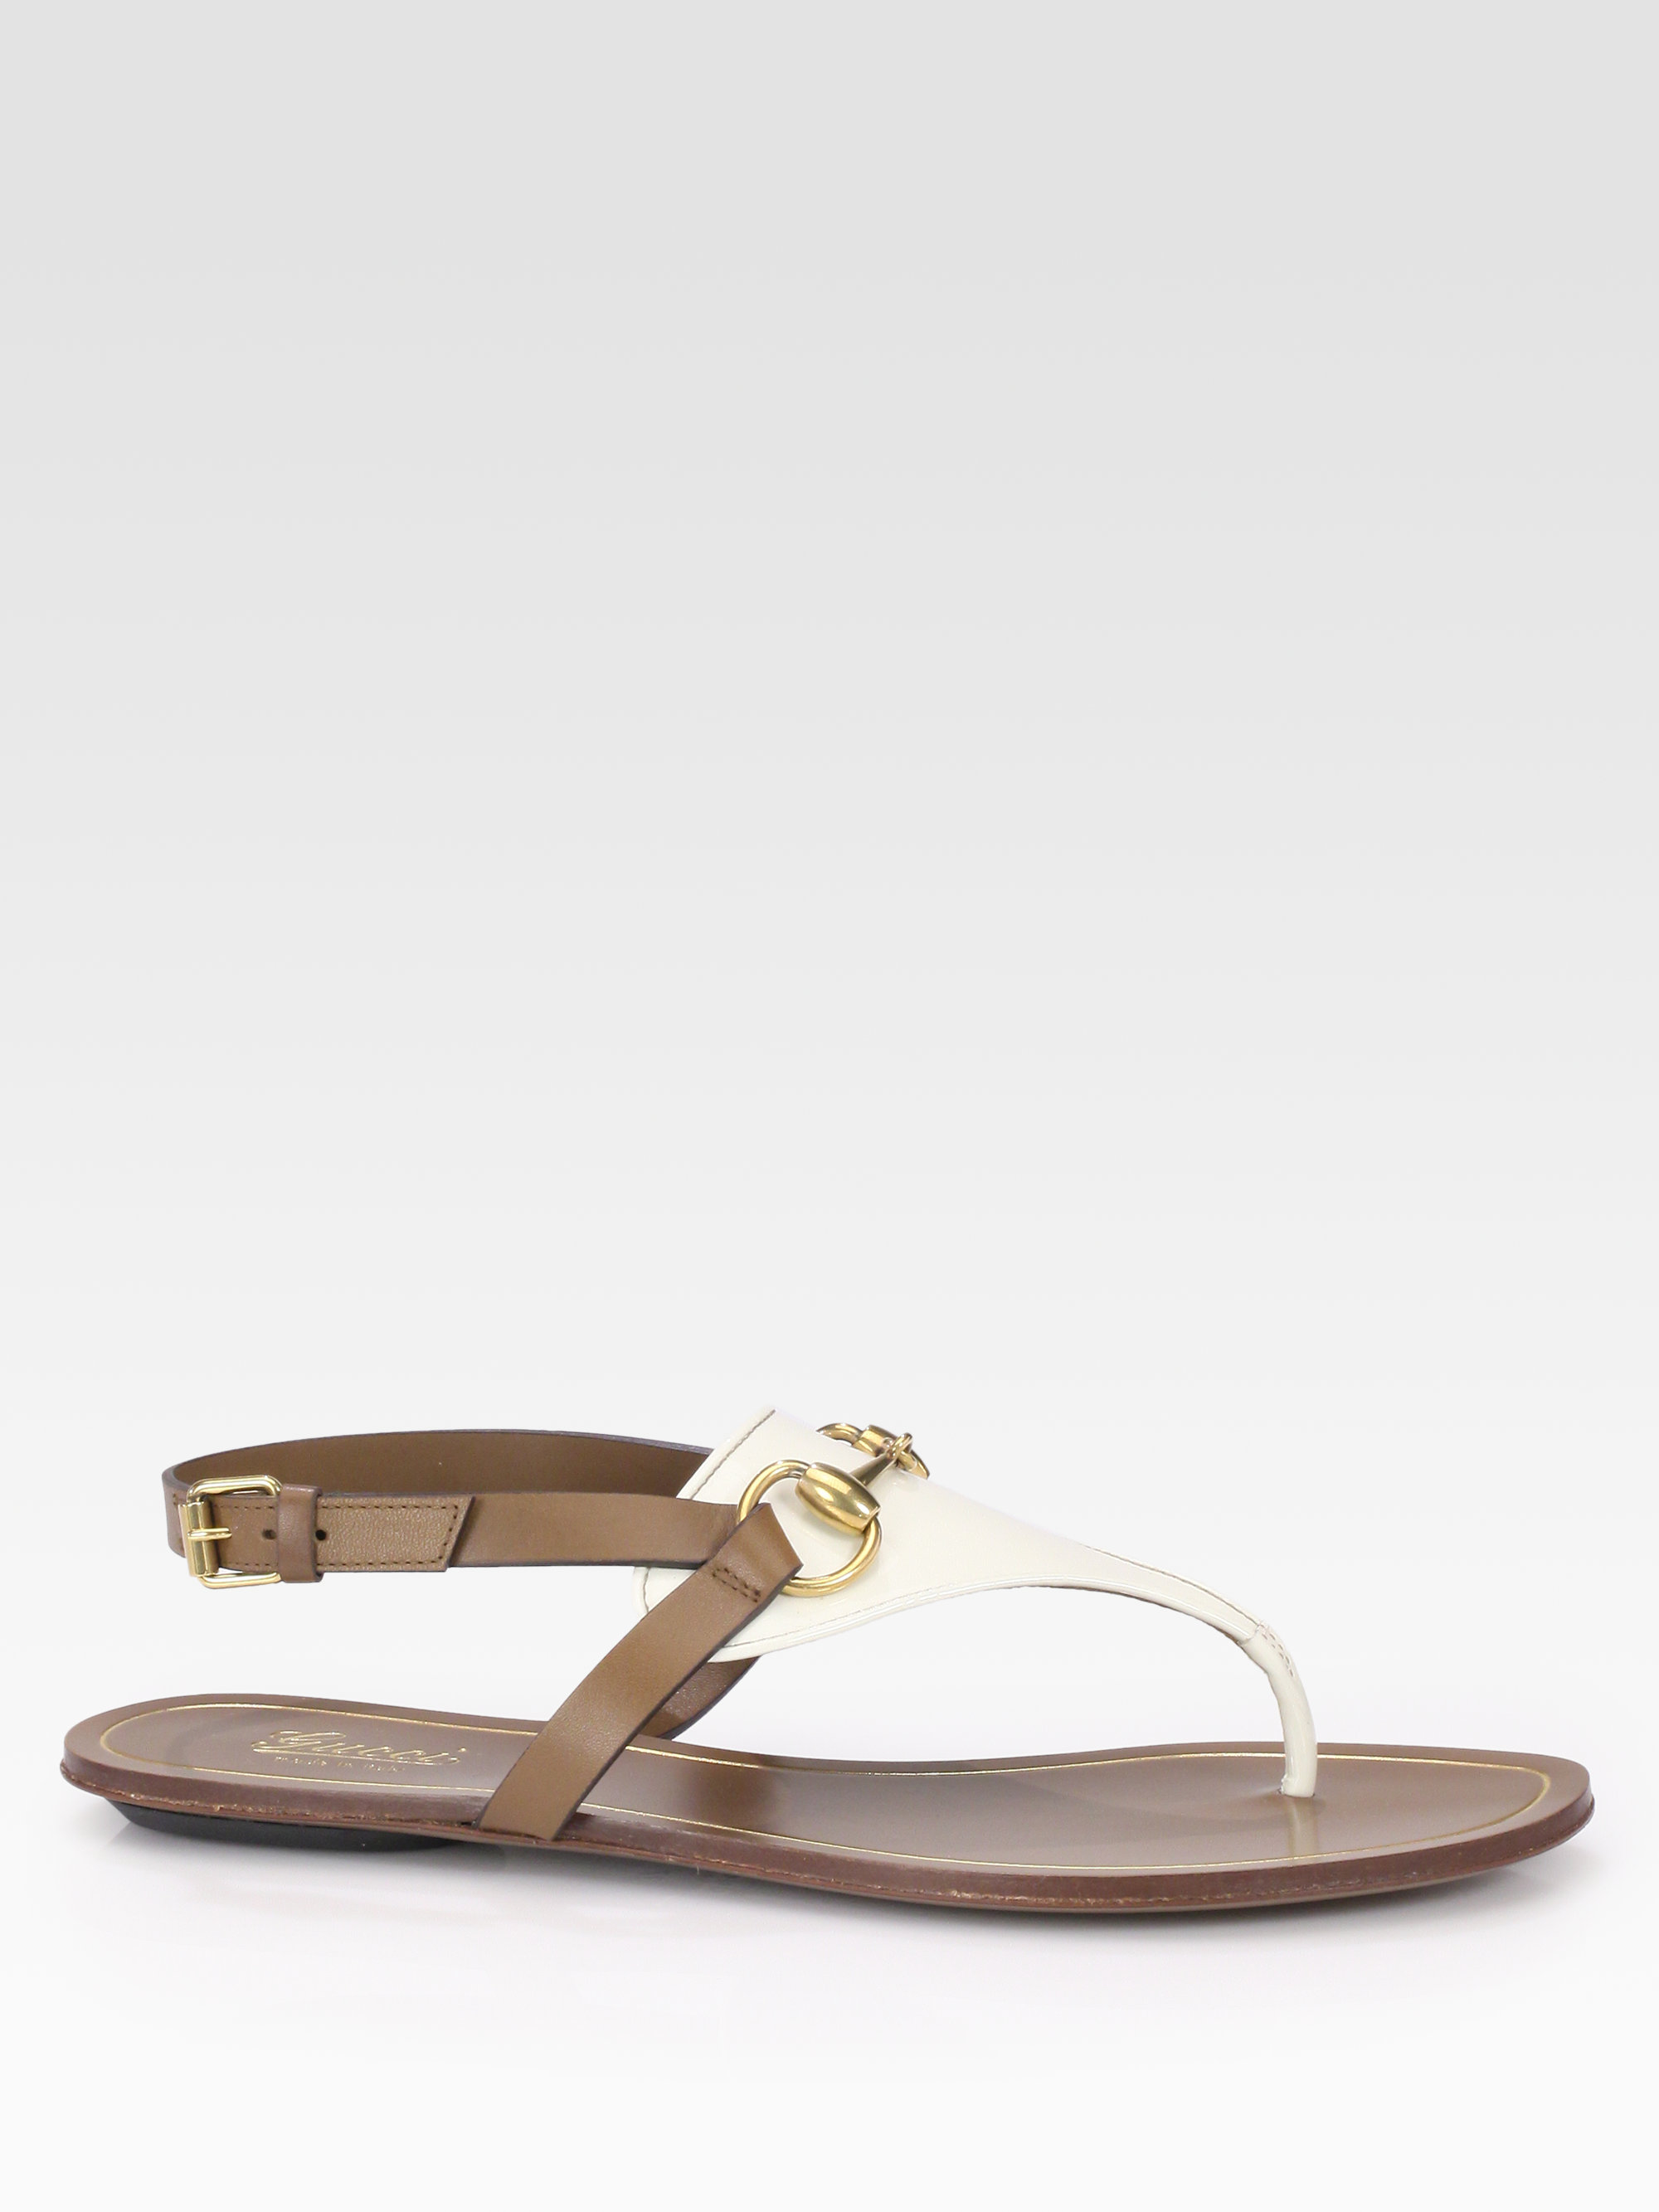 e3034c6858fcb3 Lyst - Gucci Bicolor Patent Leather Leather Horsebit Sandals in Brown